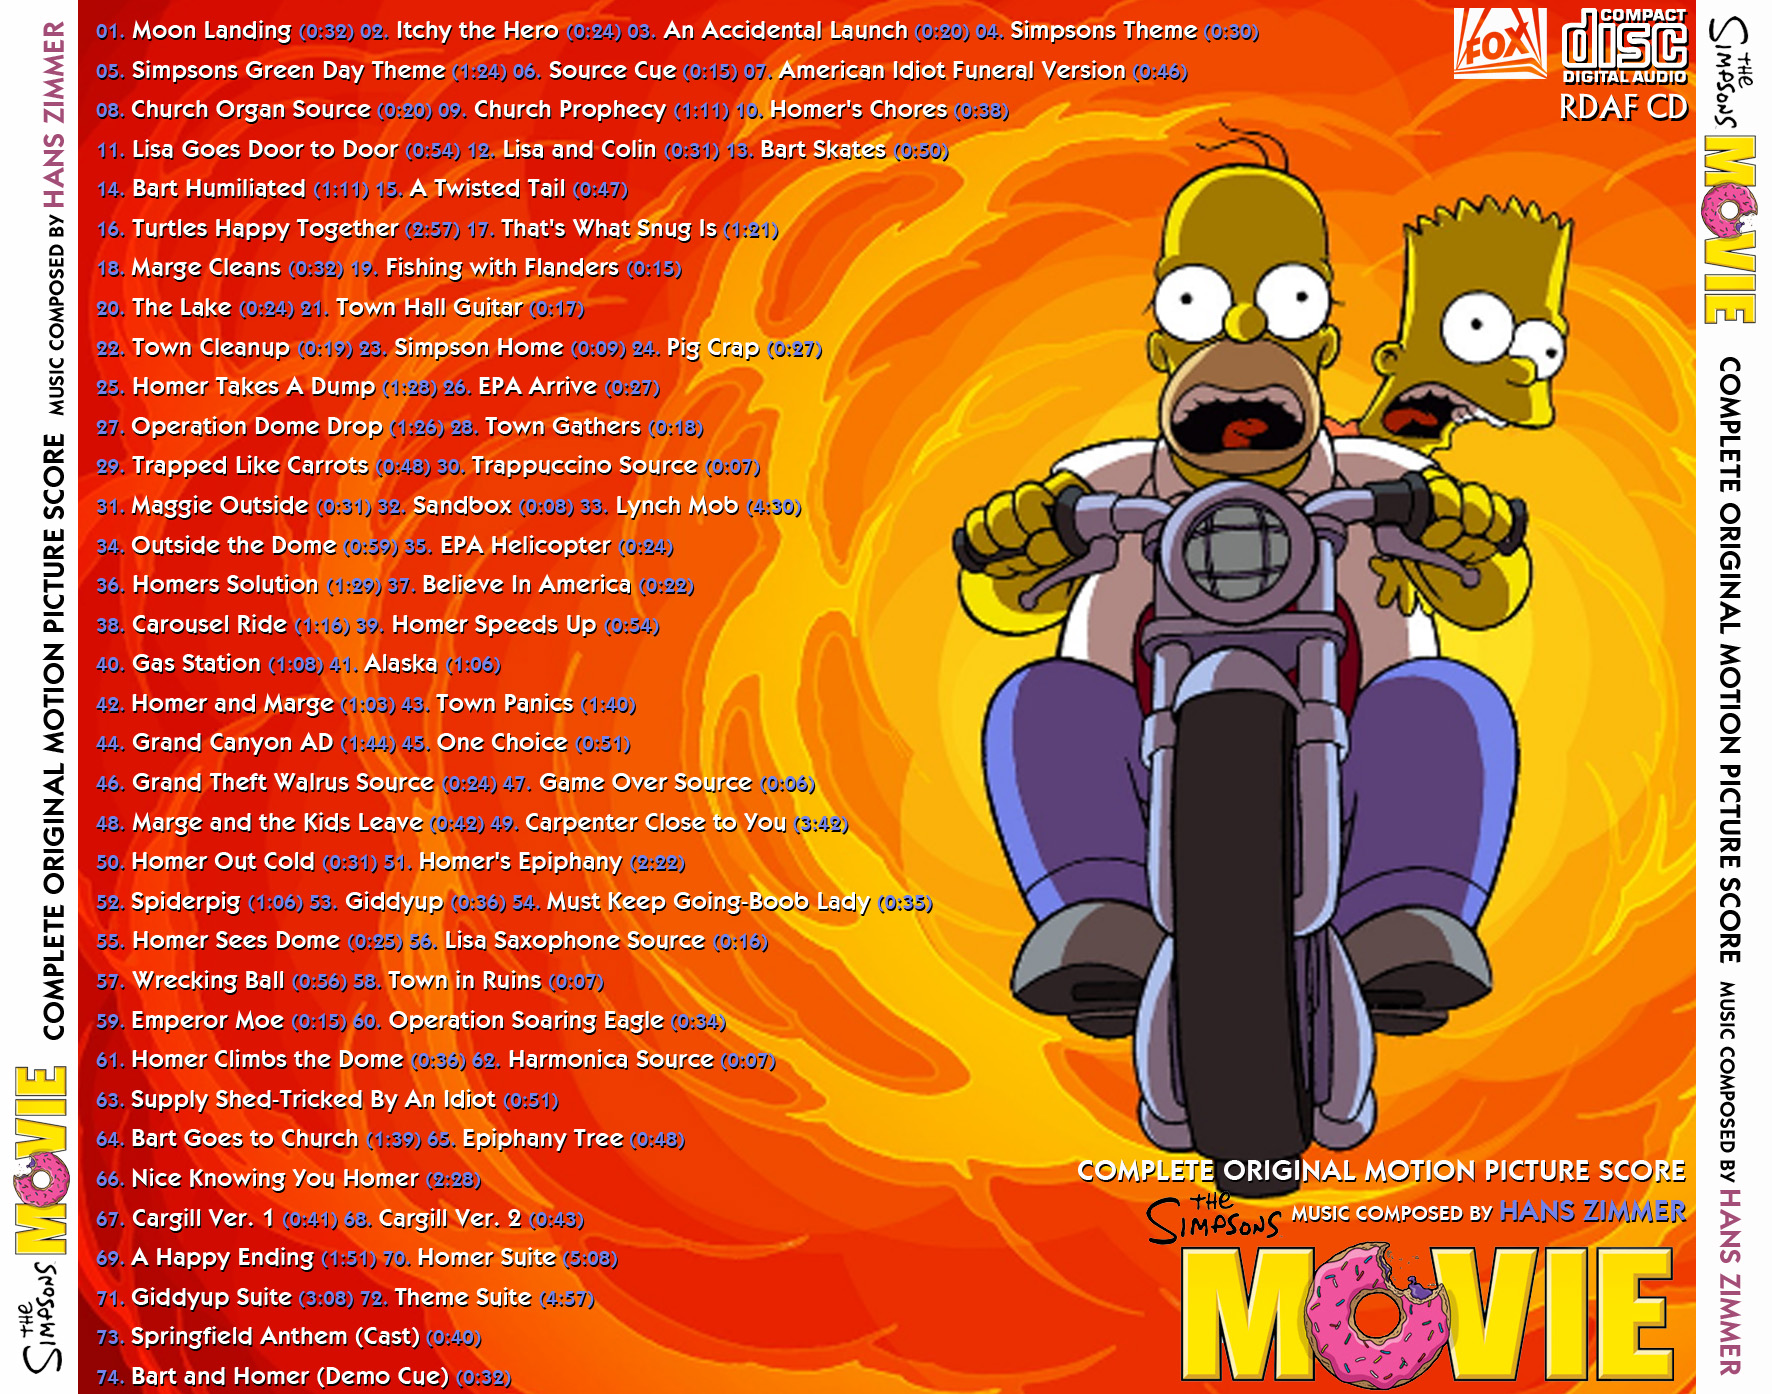 Soundtrack The Simpsons Movie 320kpbs Identi